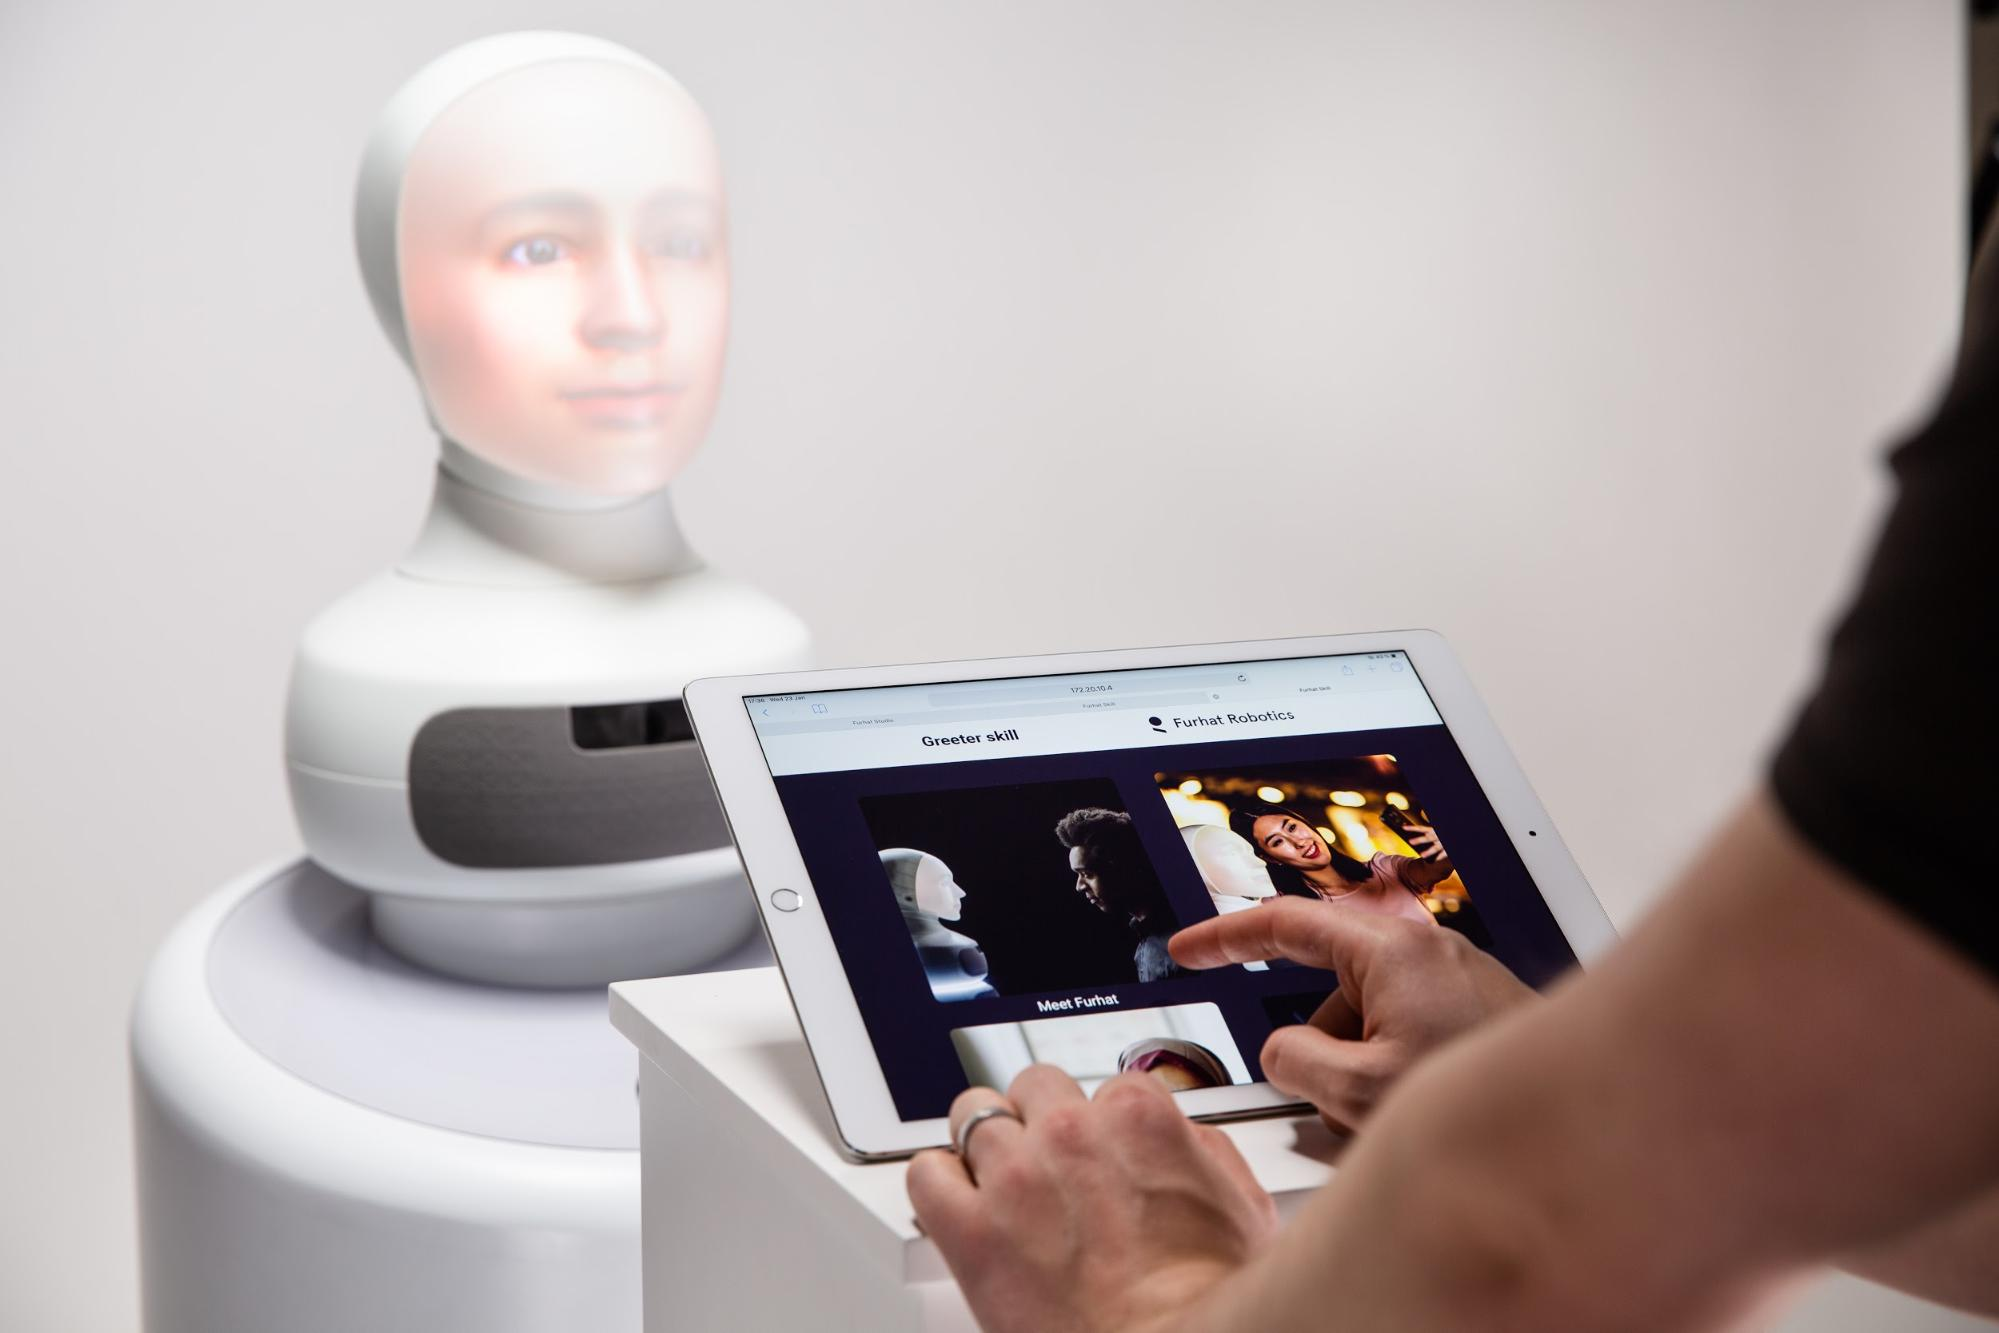 Should social robots have touch screens?